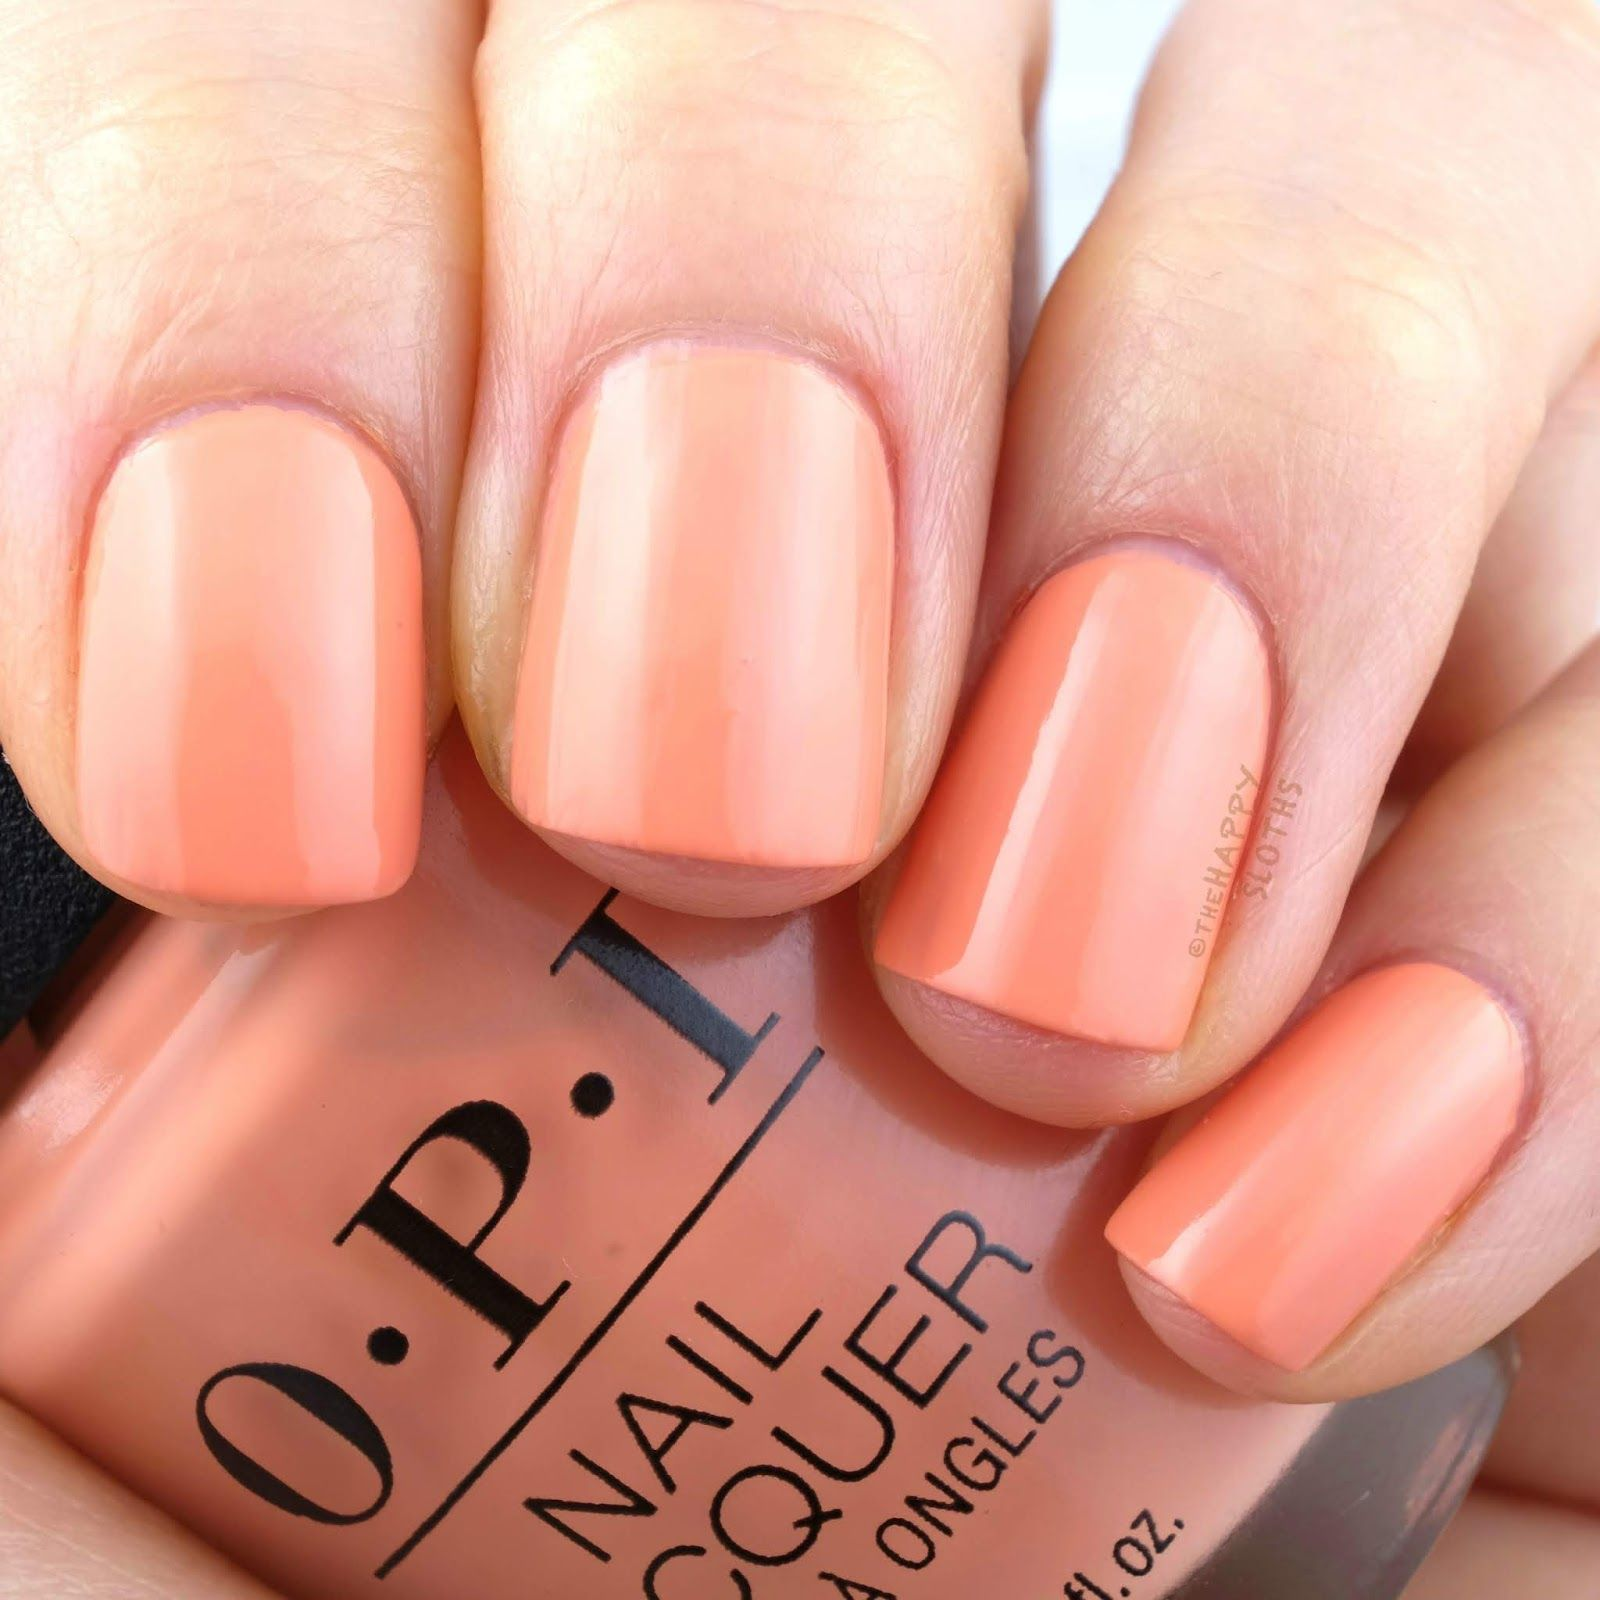 Opi In 2020 With Images Opi Gel Nail Colors Opi Nail Colors